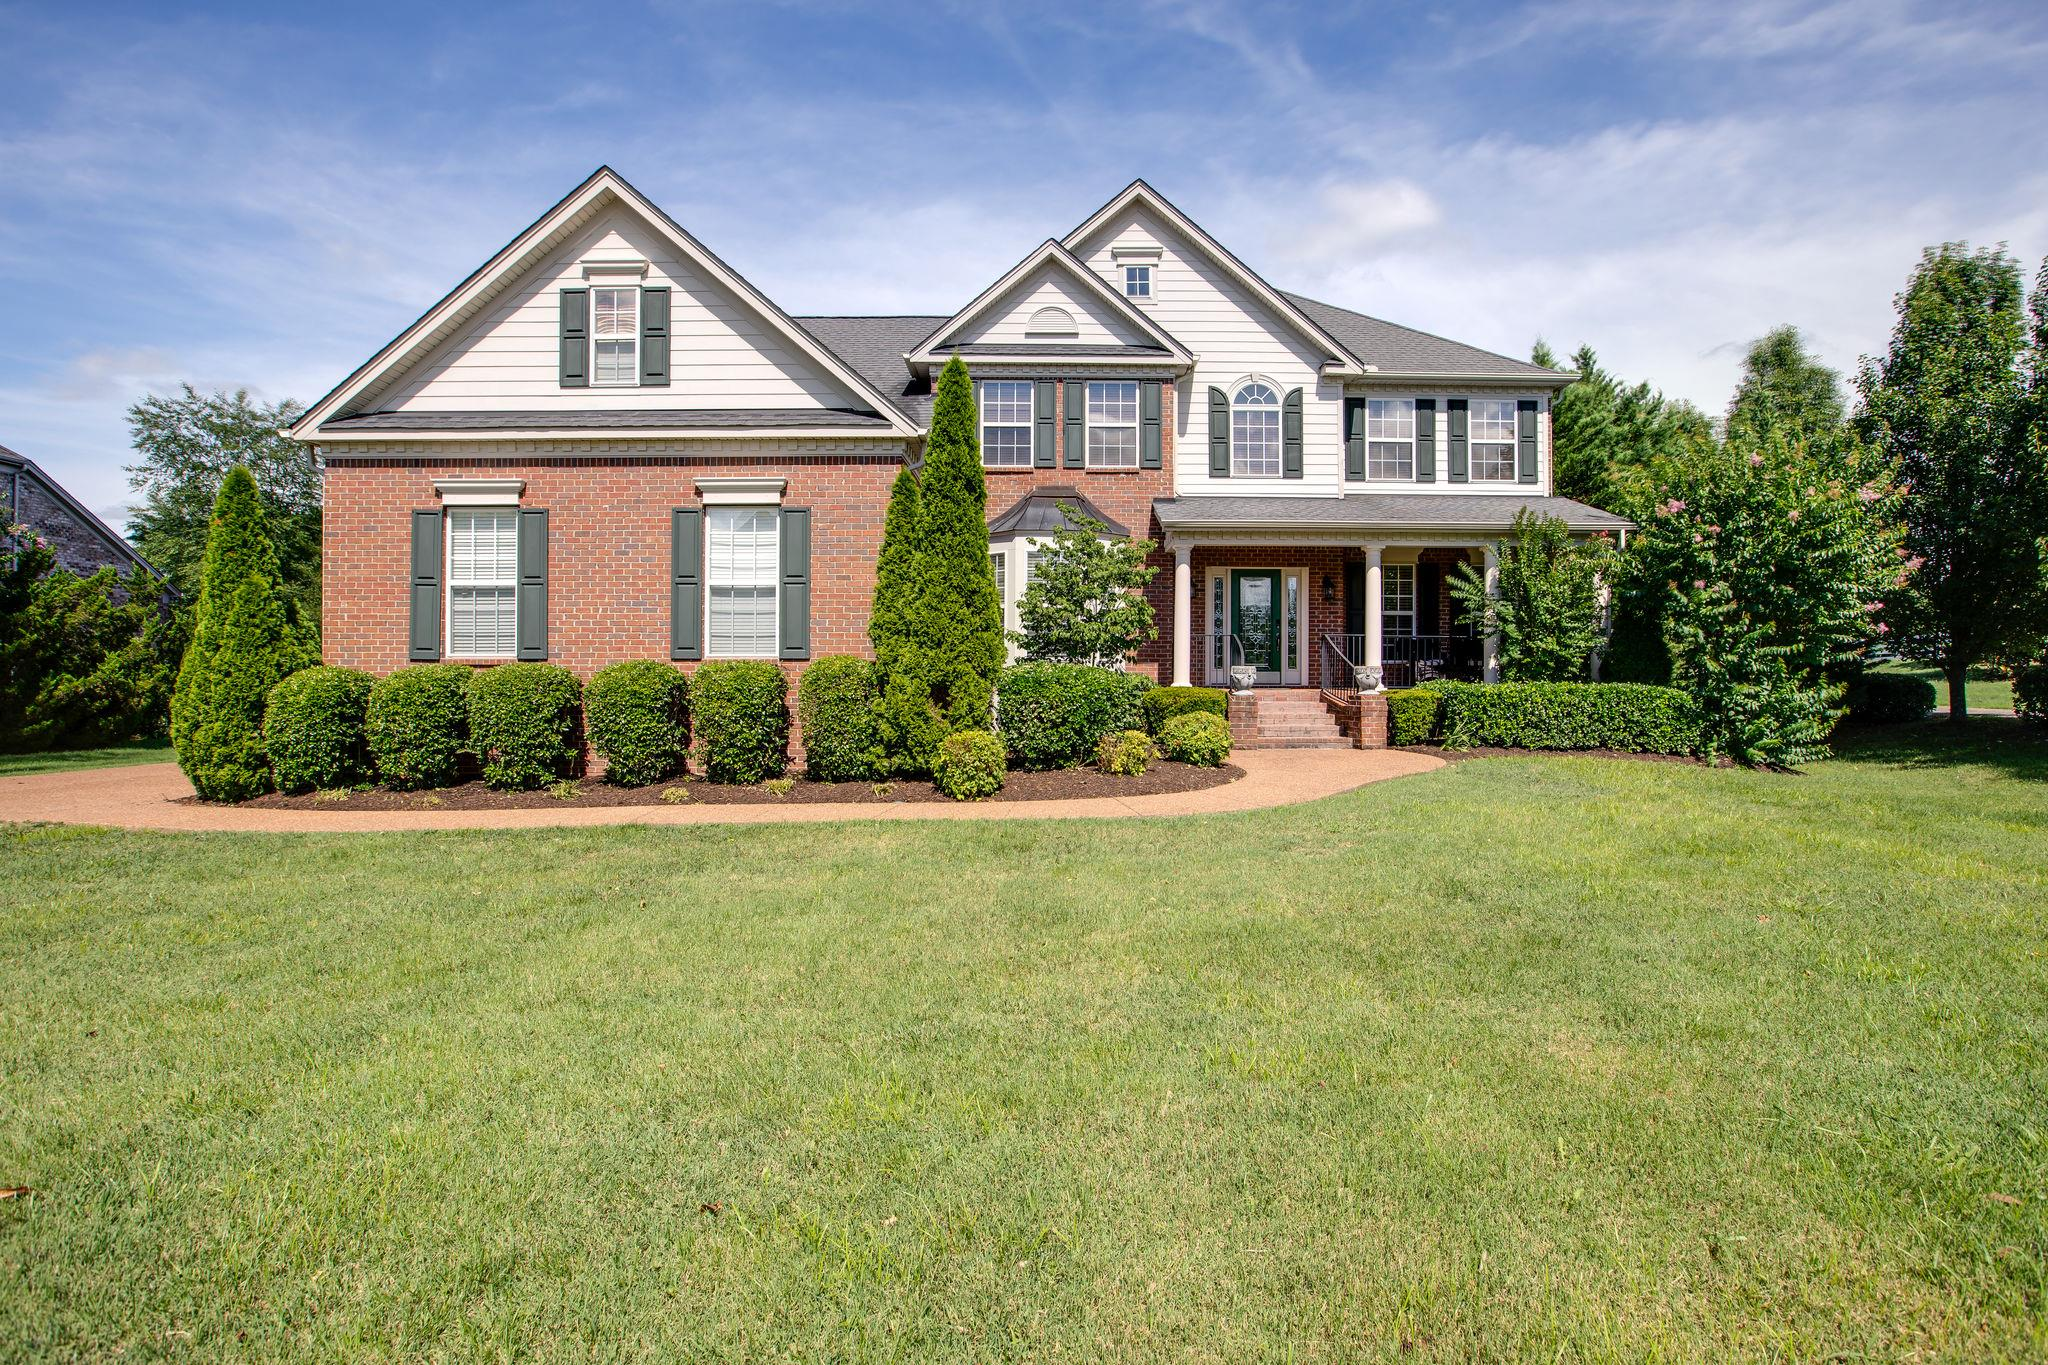 96 Timberline Dr, Bellevue, Tennessee